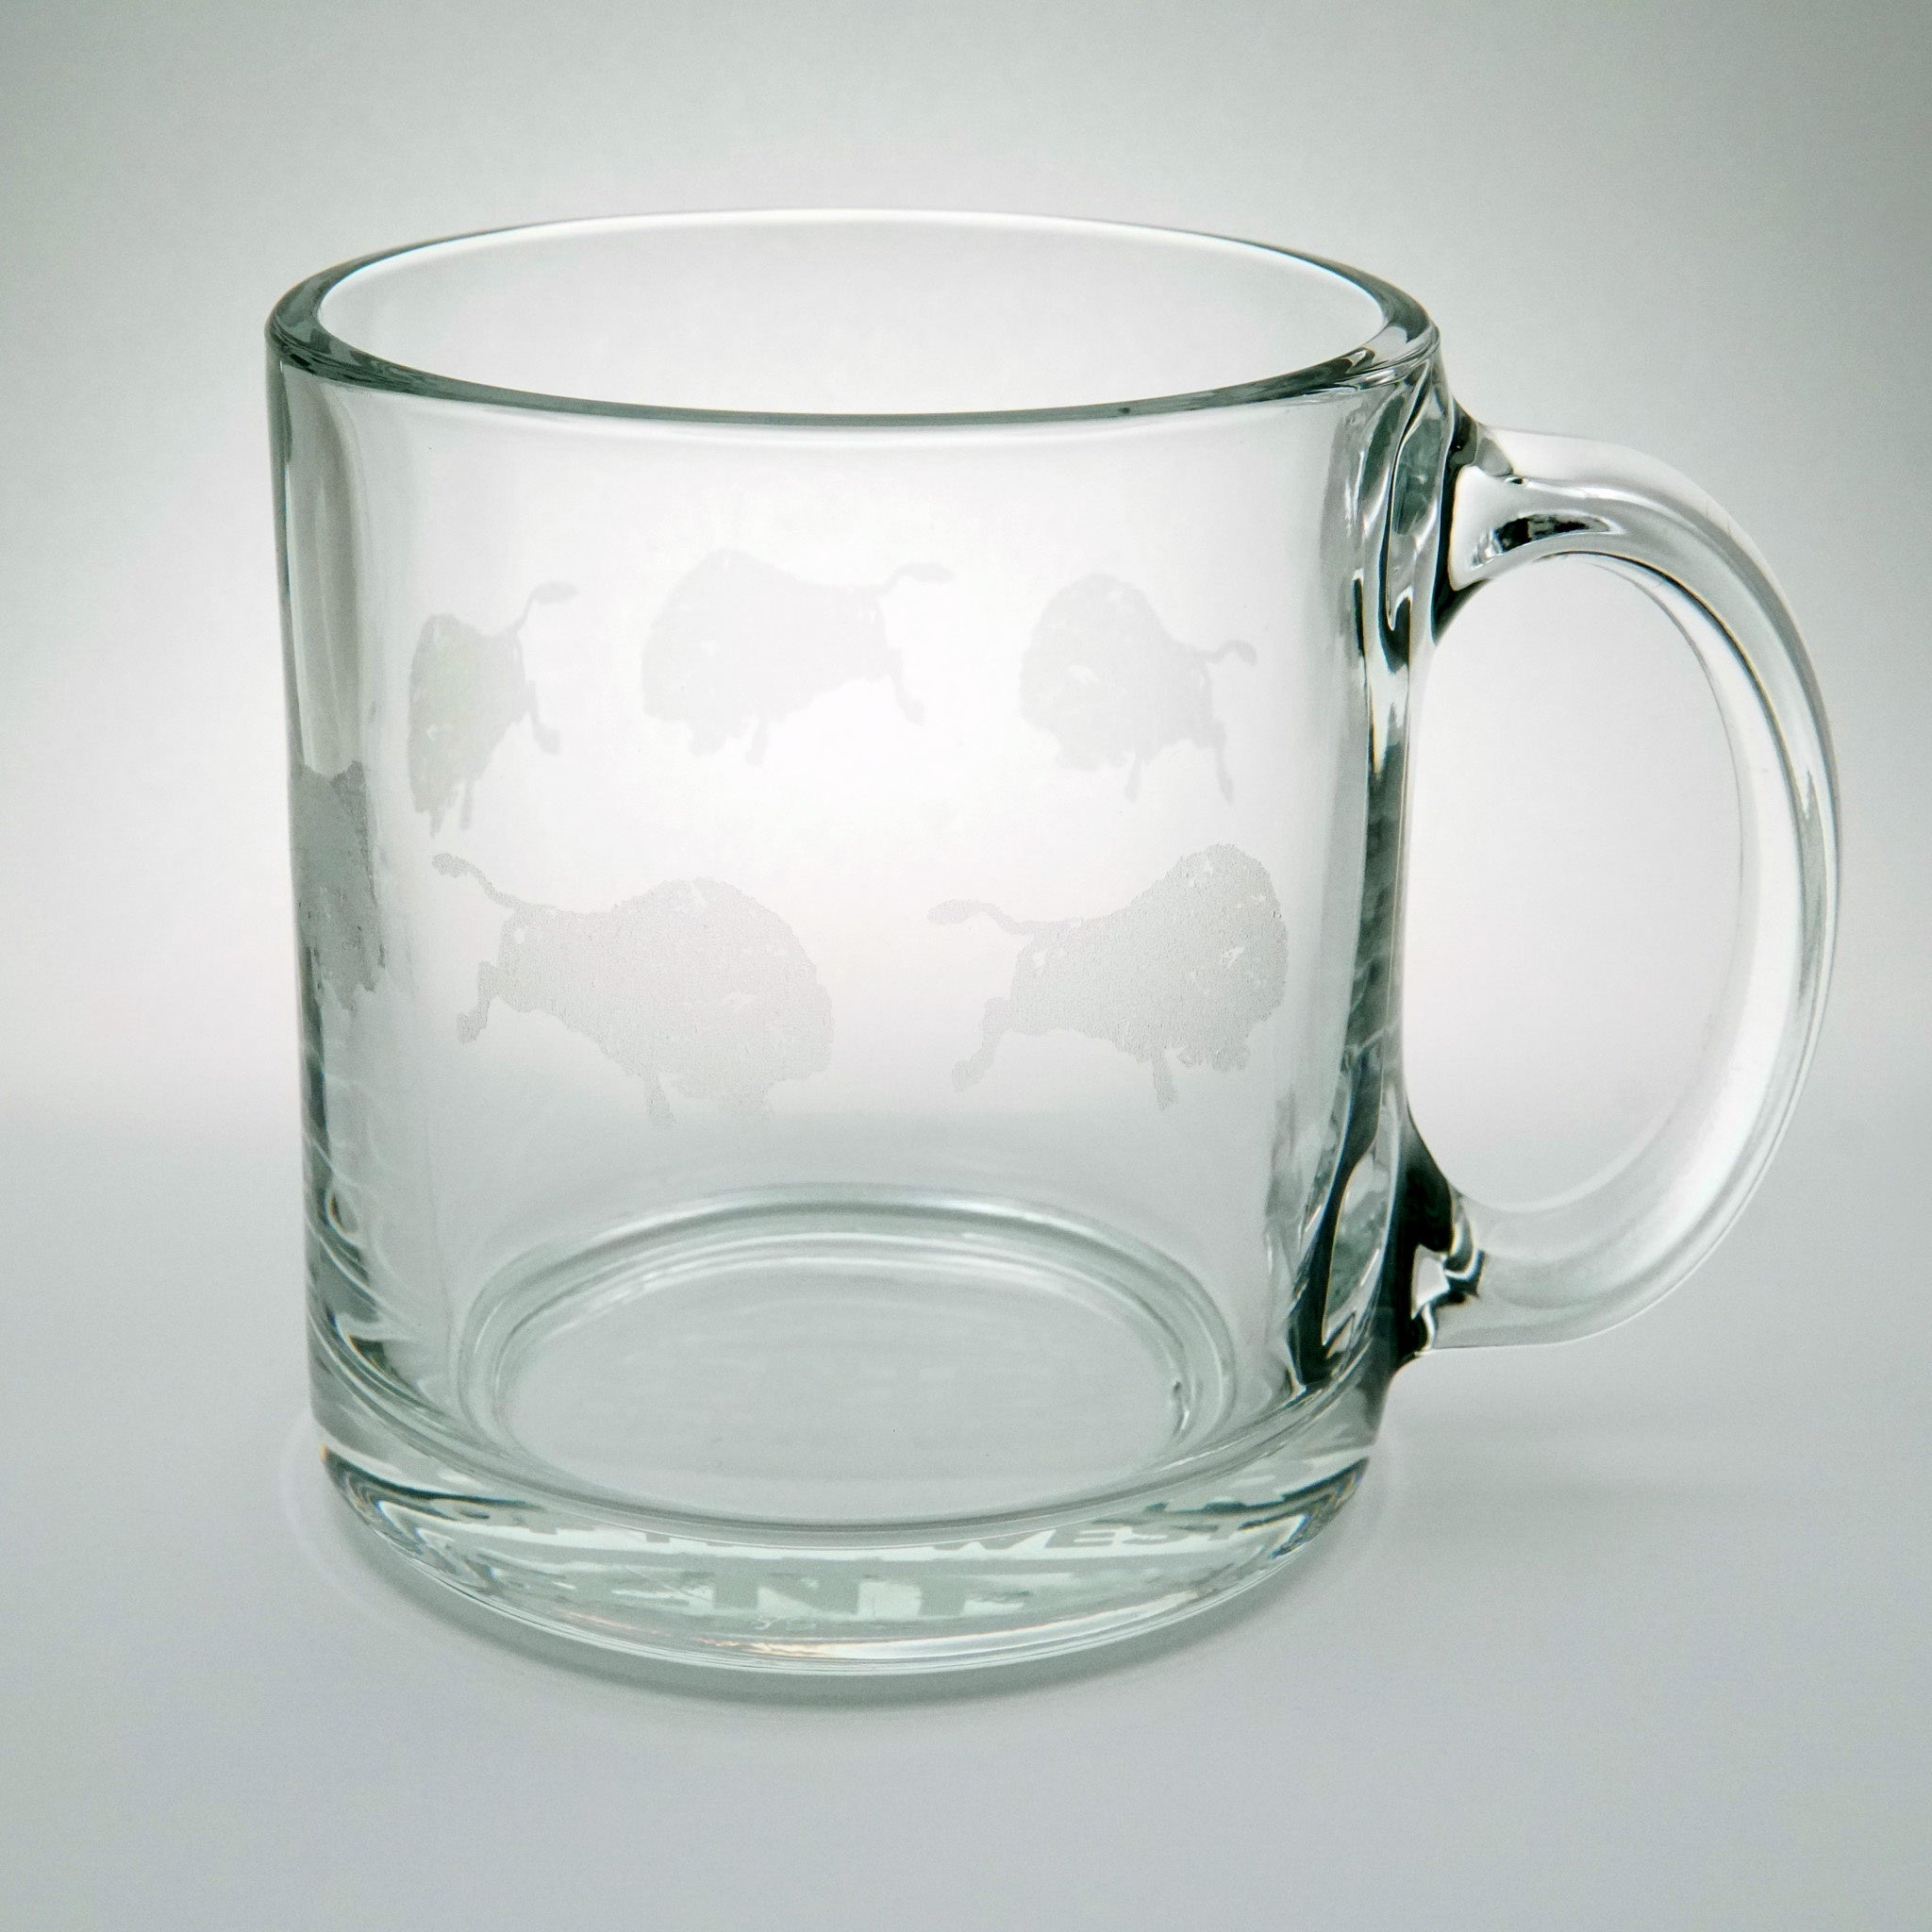 Etched Buffalo Coffee Mug - 41046347